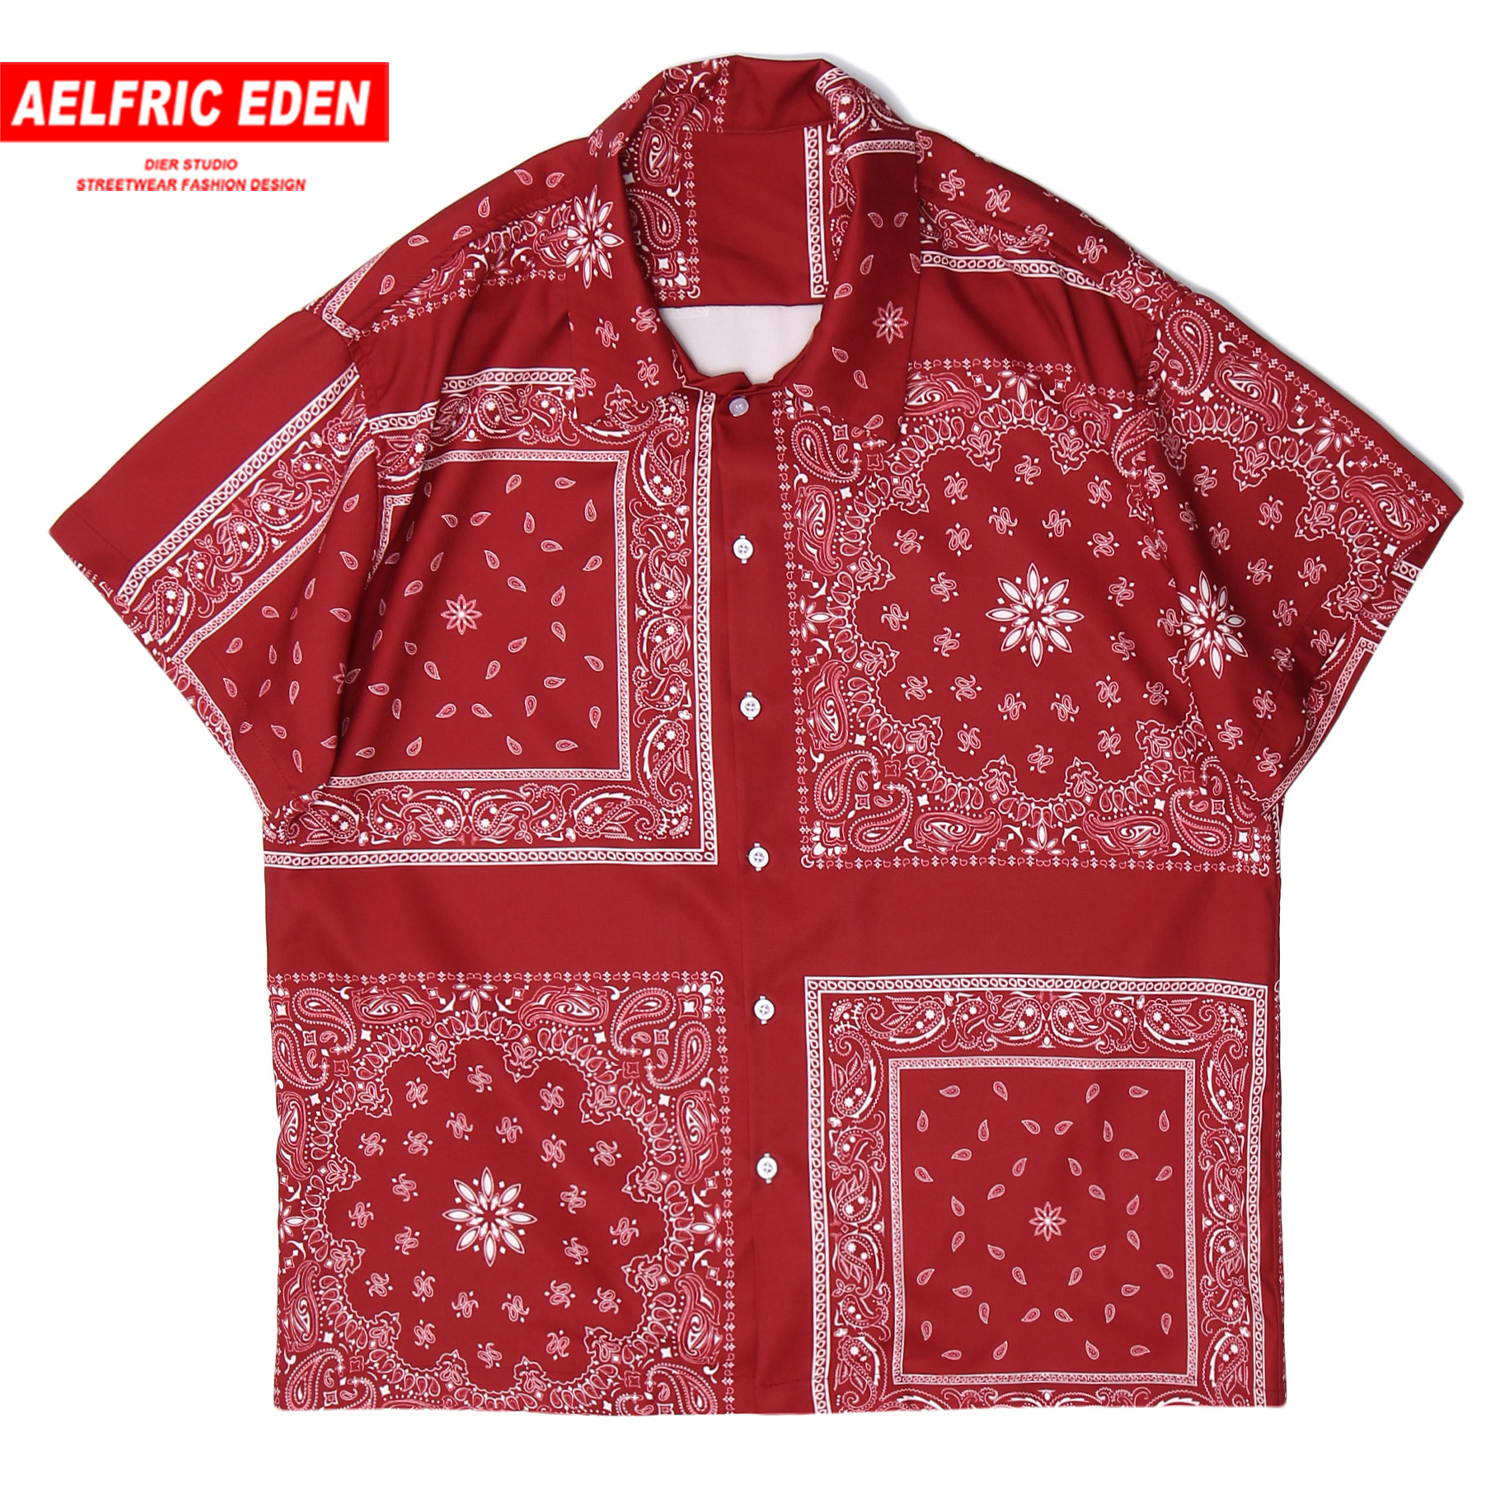 Aelfric Eden Cashew Flowers Print Men Hawaii Shirt 2020 Summer Beach Short Sleeve Turn-down Collar Tops Casual Streetwear Shirts